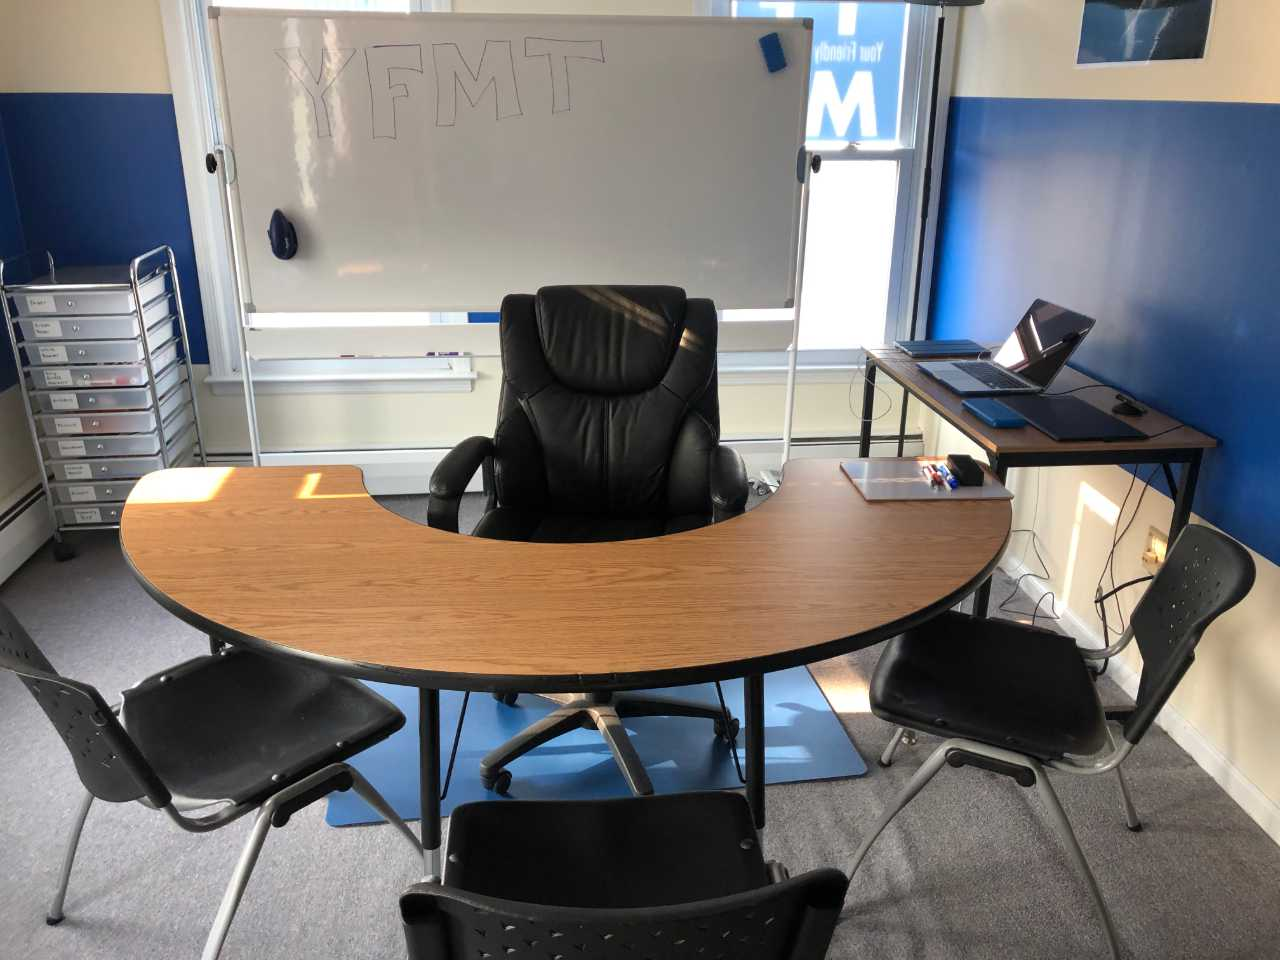 Half moon desk set up for group math tutoring with large whiteboard and other technologies